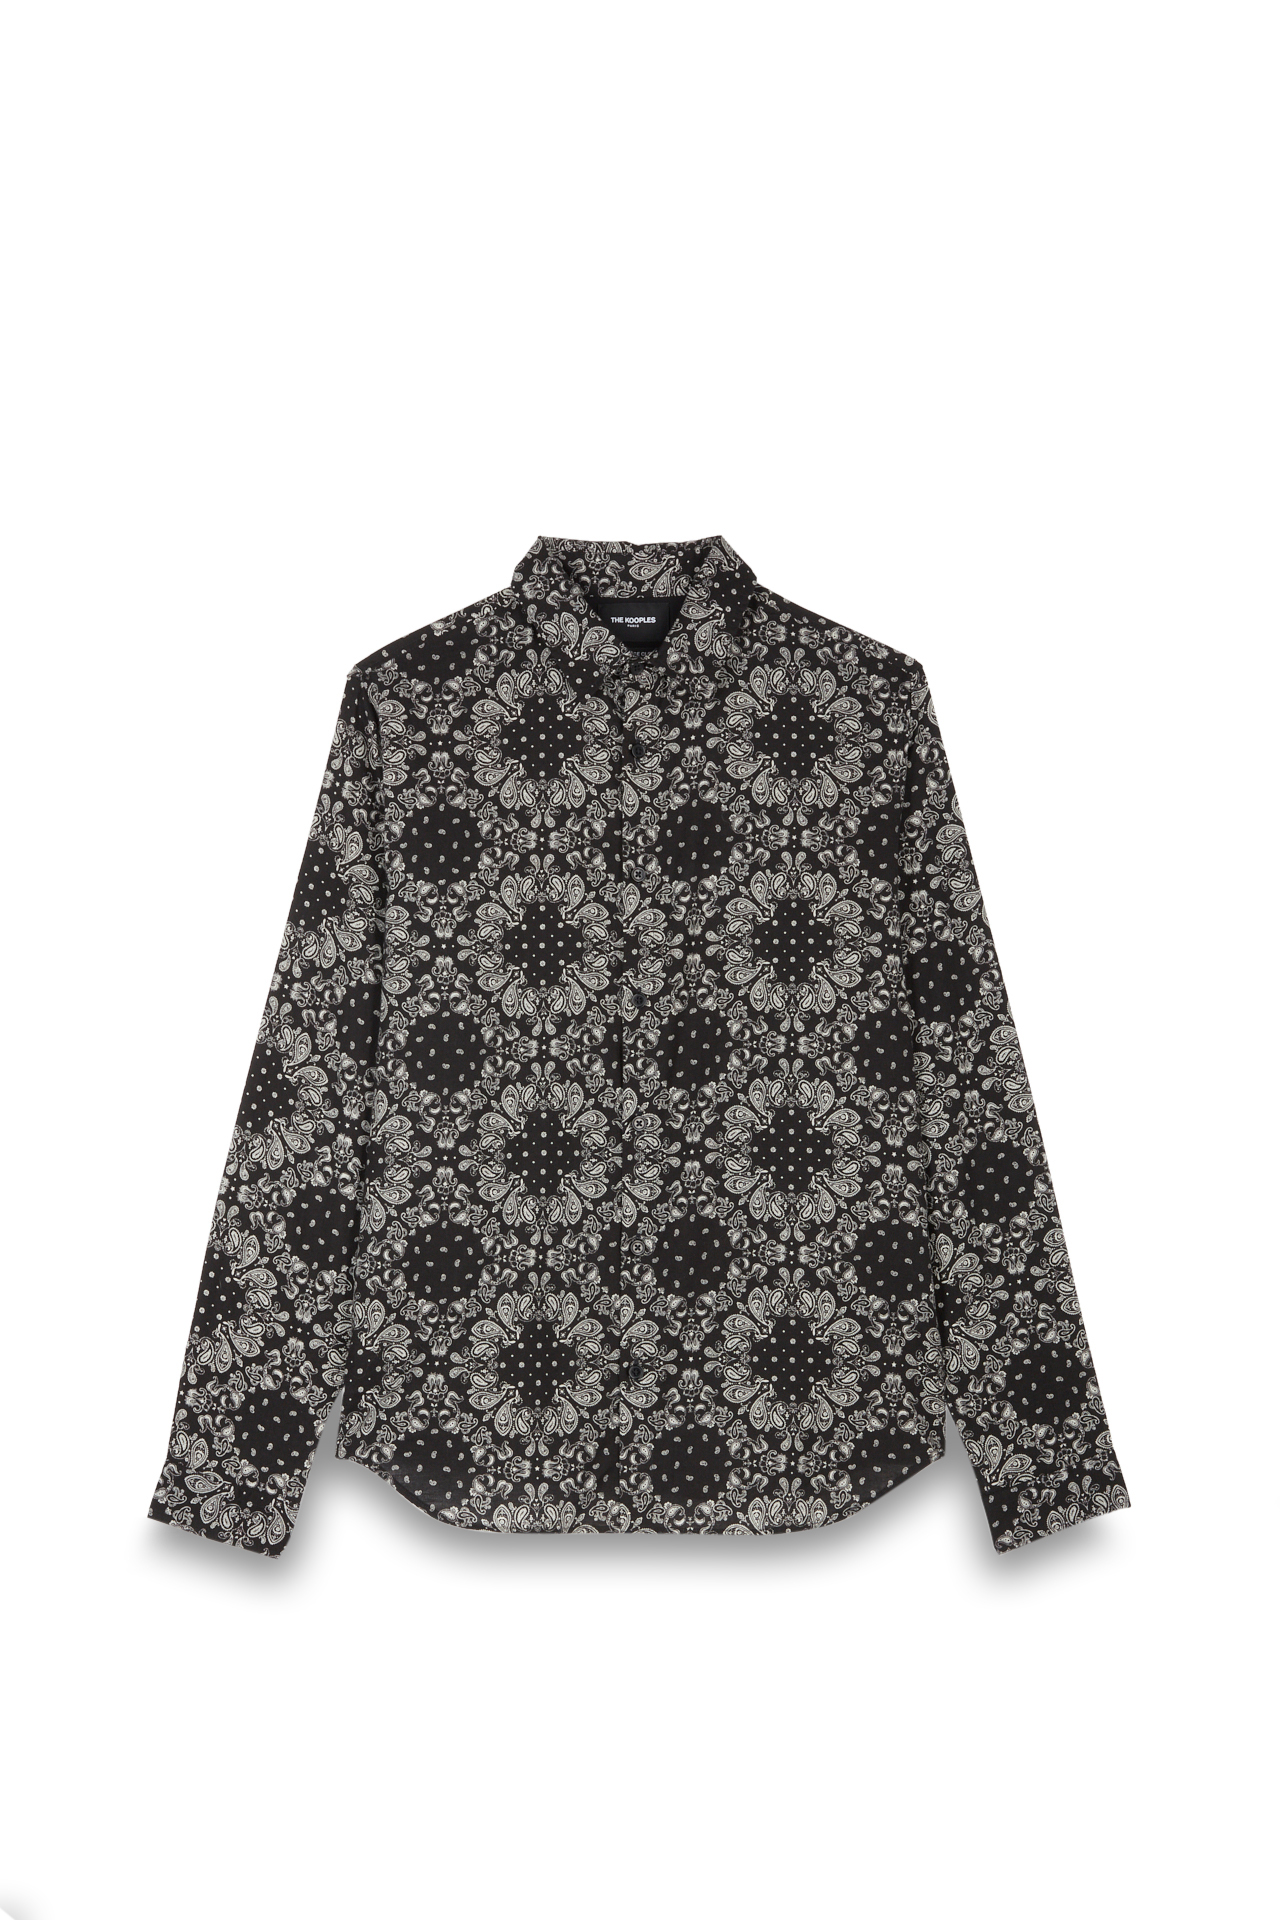 The Kooples Printed shirt La Vallée Village